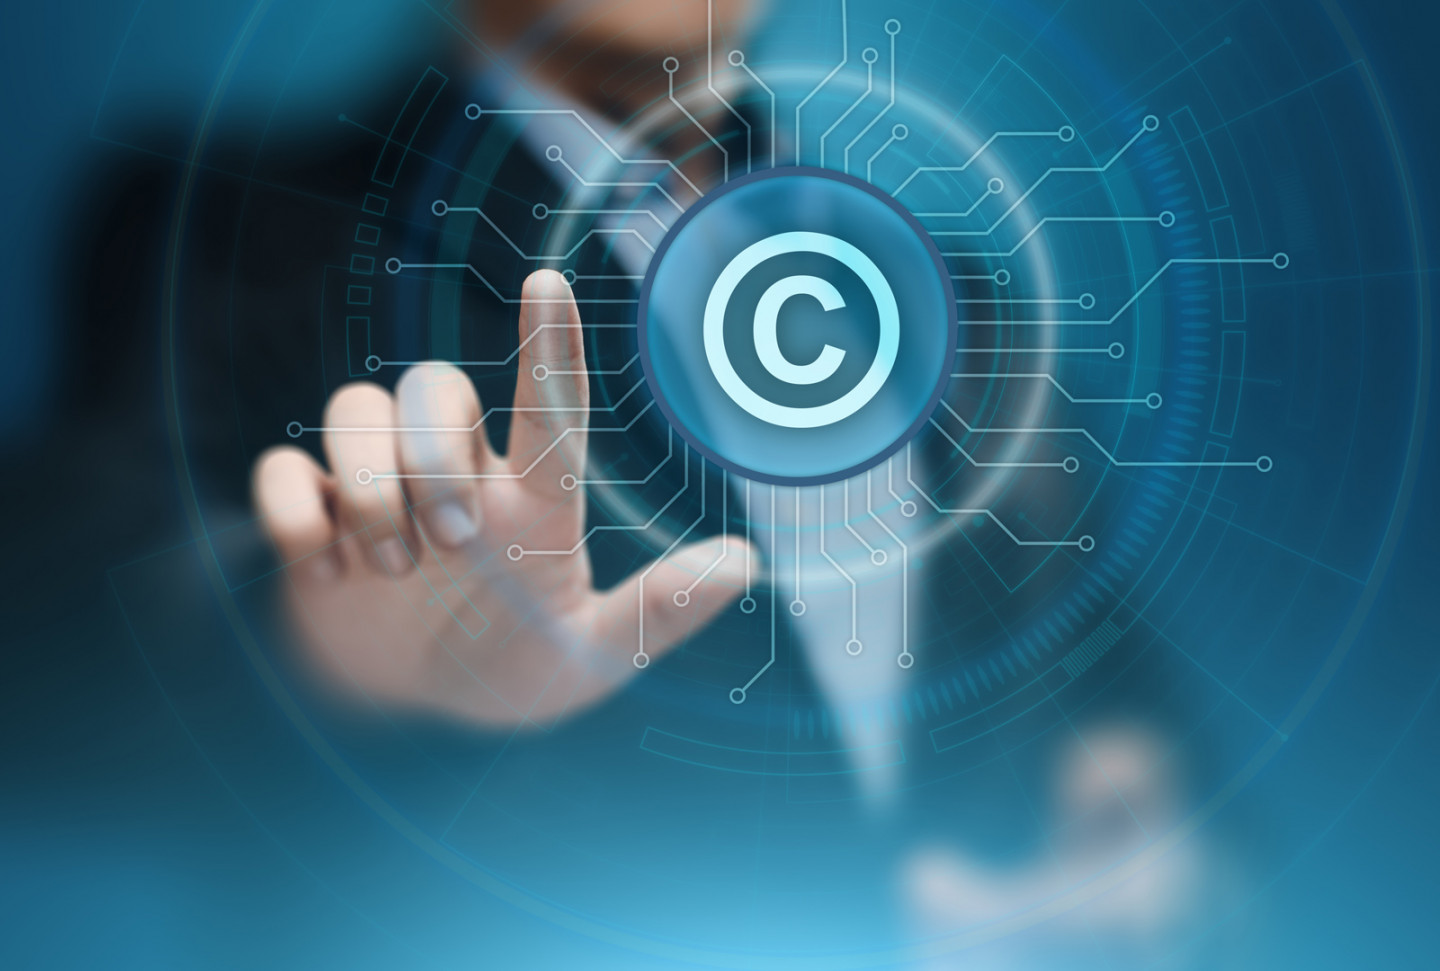 Patent Law Copyright Intellectual Property Business Internet Tec